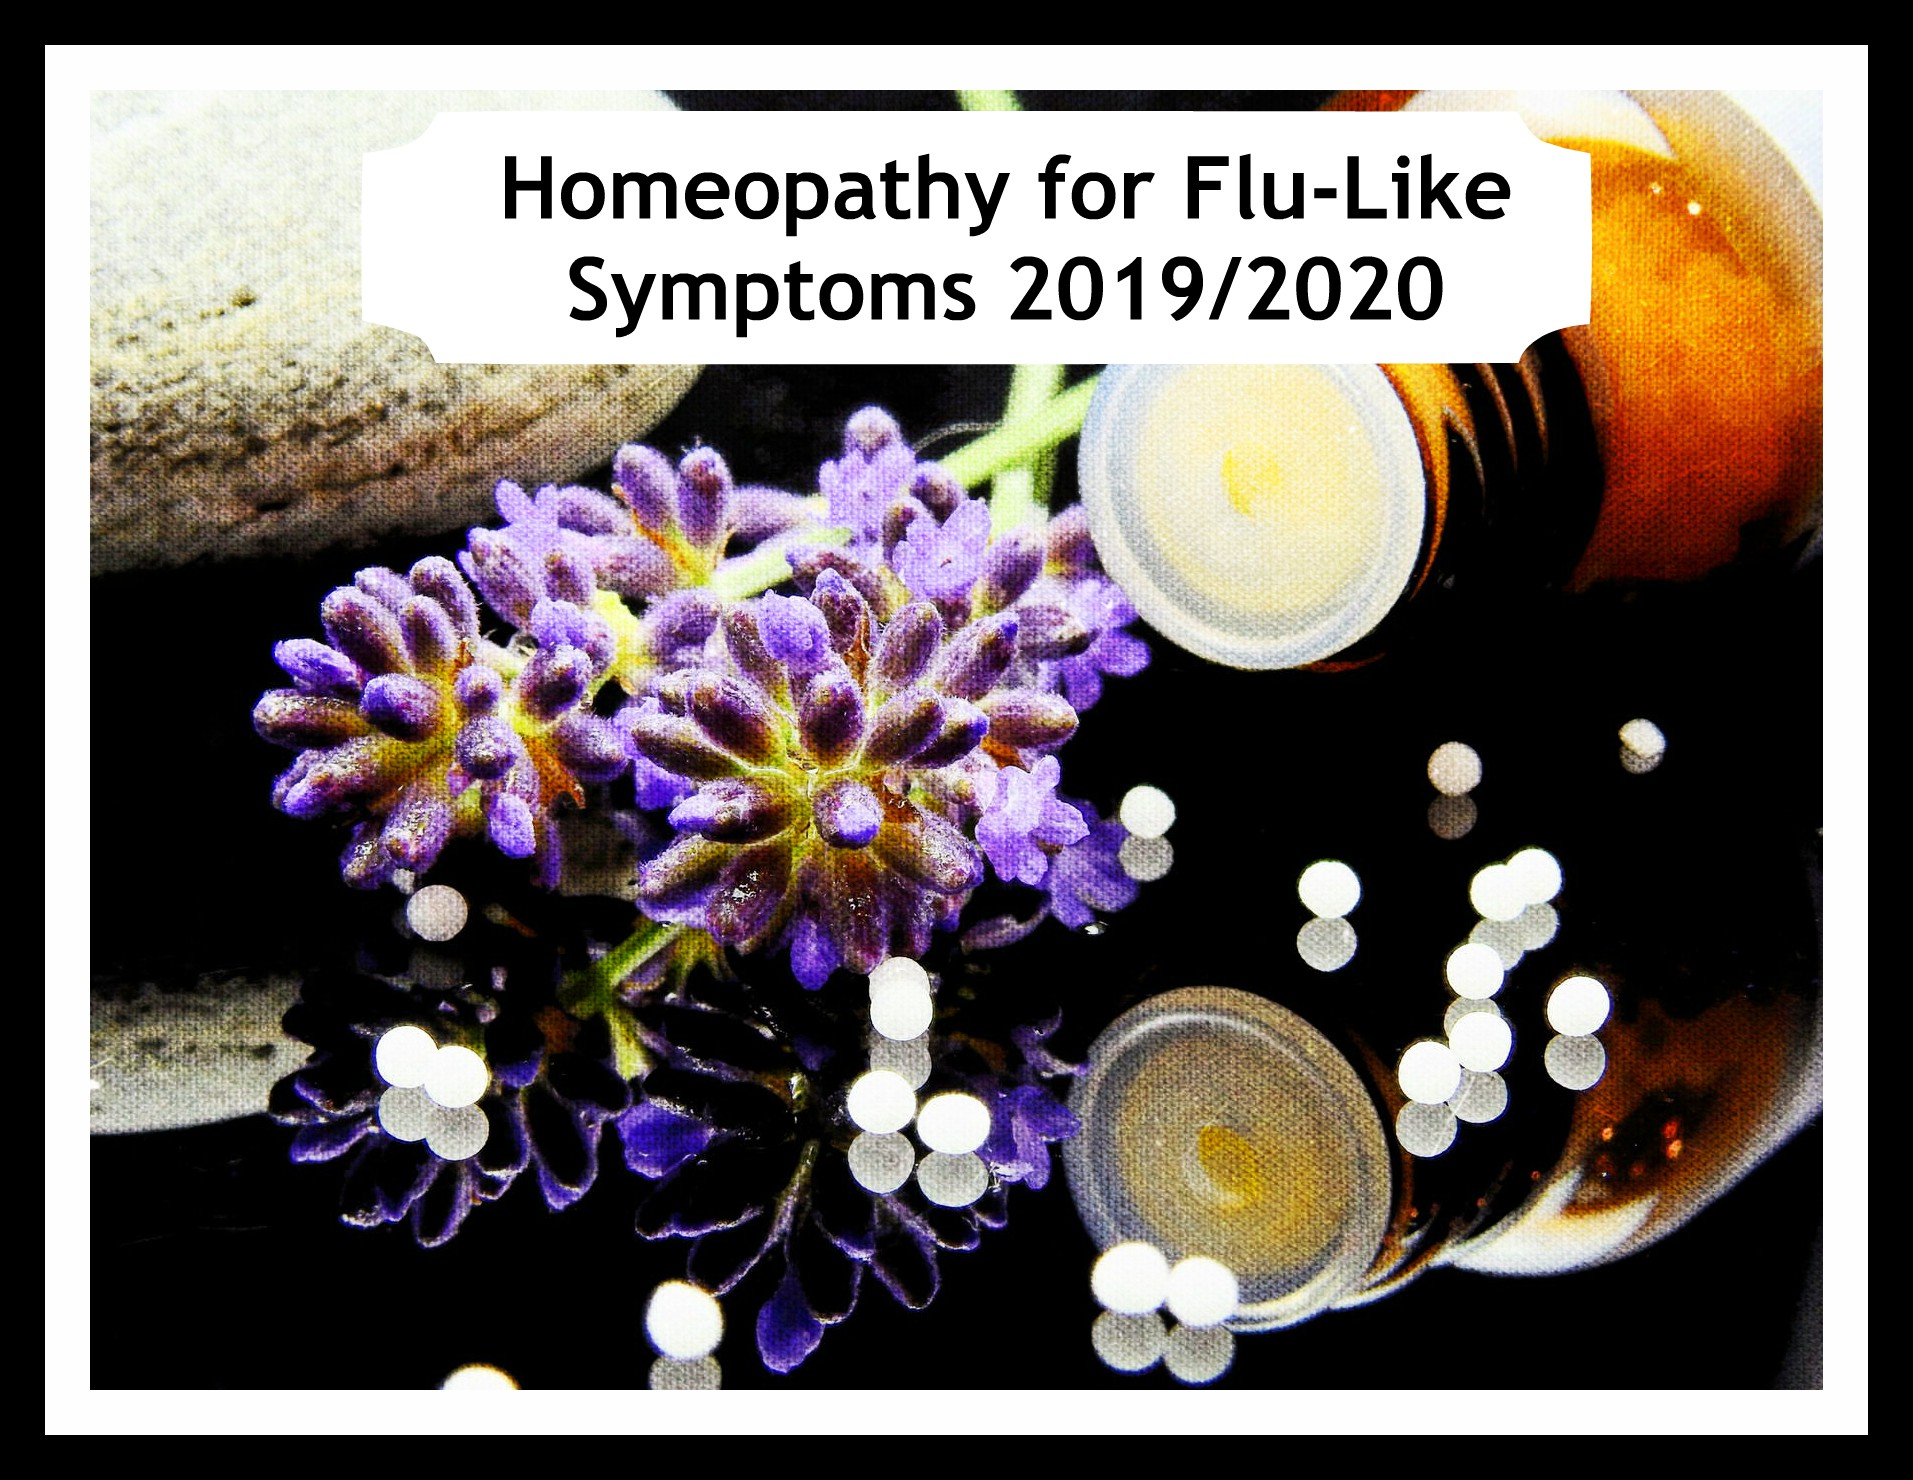 Homeopathy for Flu-like Symptoms 2019/2020 - Quiet In The Chaos